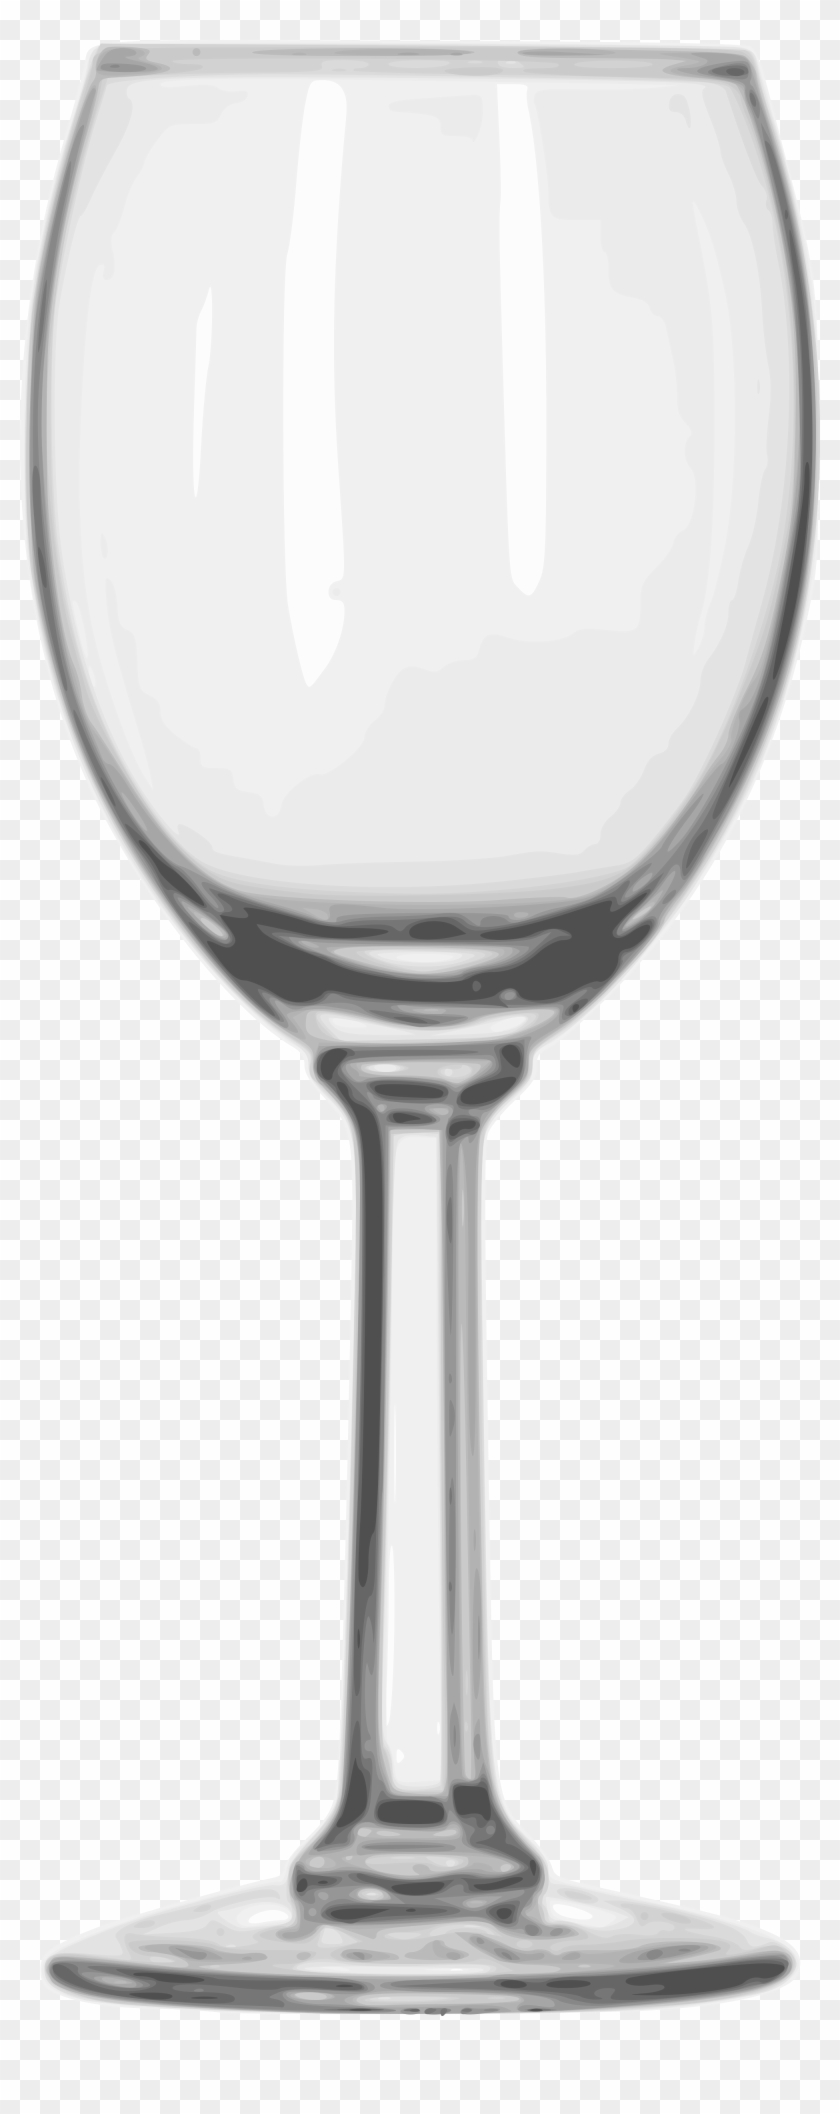 Wineglass Hd Png - Transparent Wine Glass Png Clipart #30573